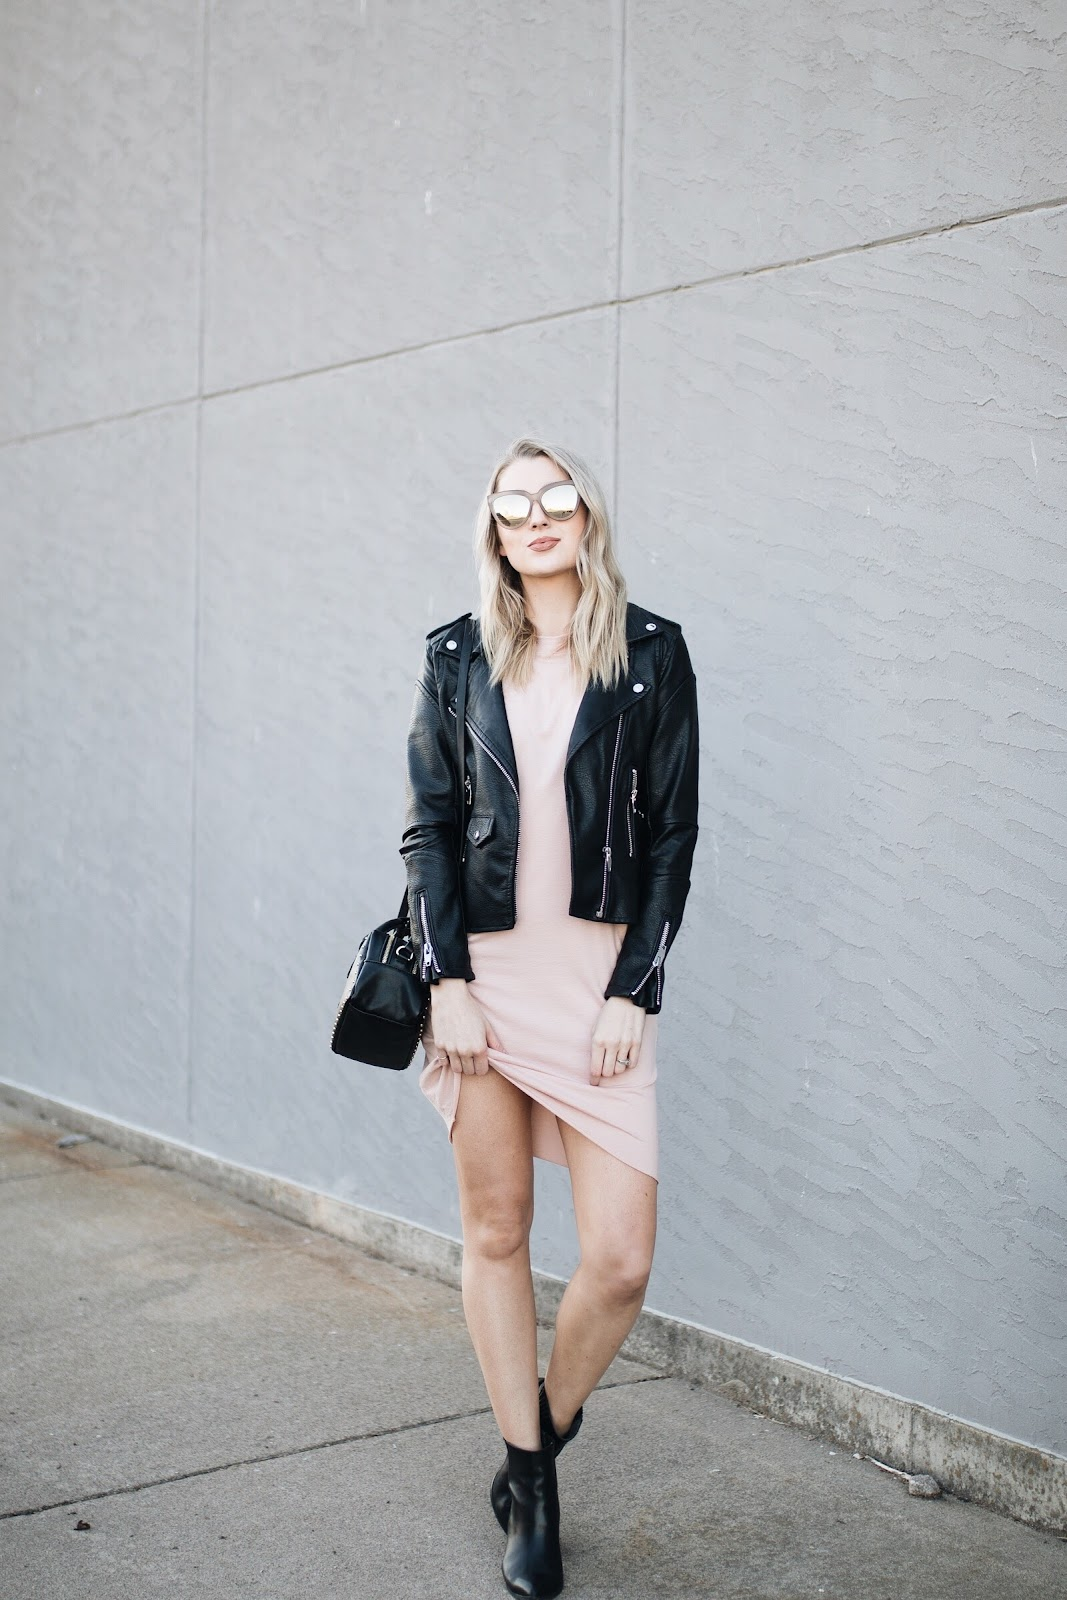 Cute spring transition outfit - t-shirt dress with a leather jacket and ankle boots